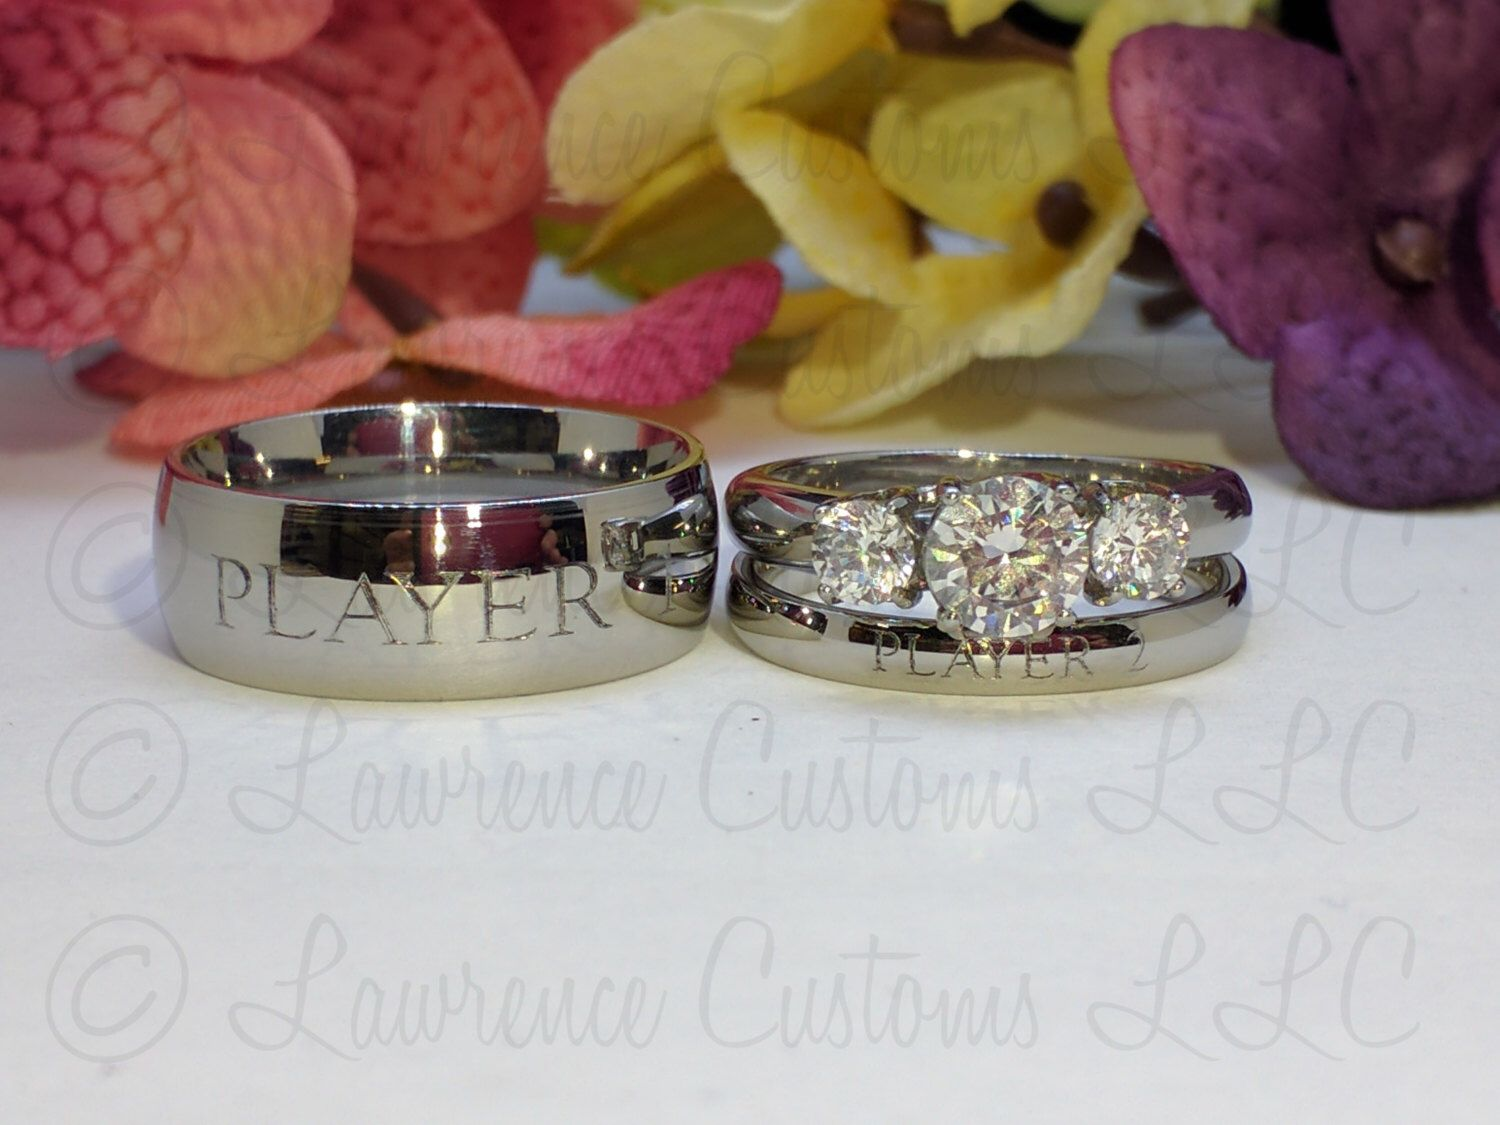 player 1 player 2 couples ring set high shine 316l stainless steel ring set